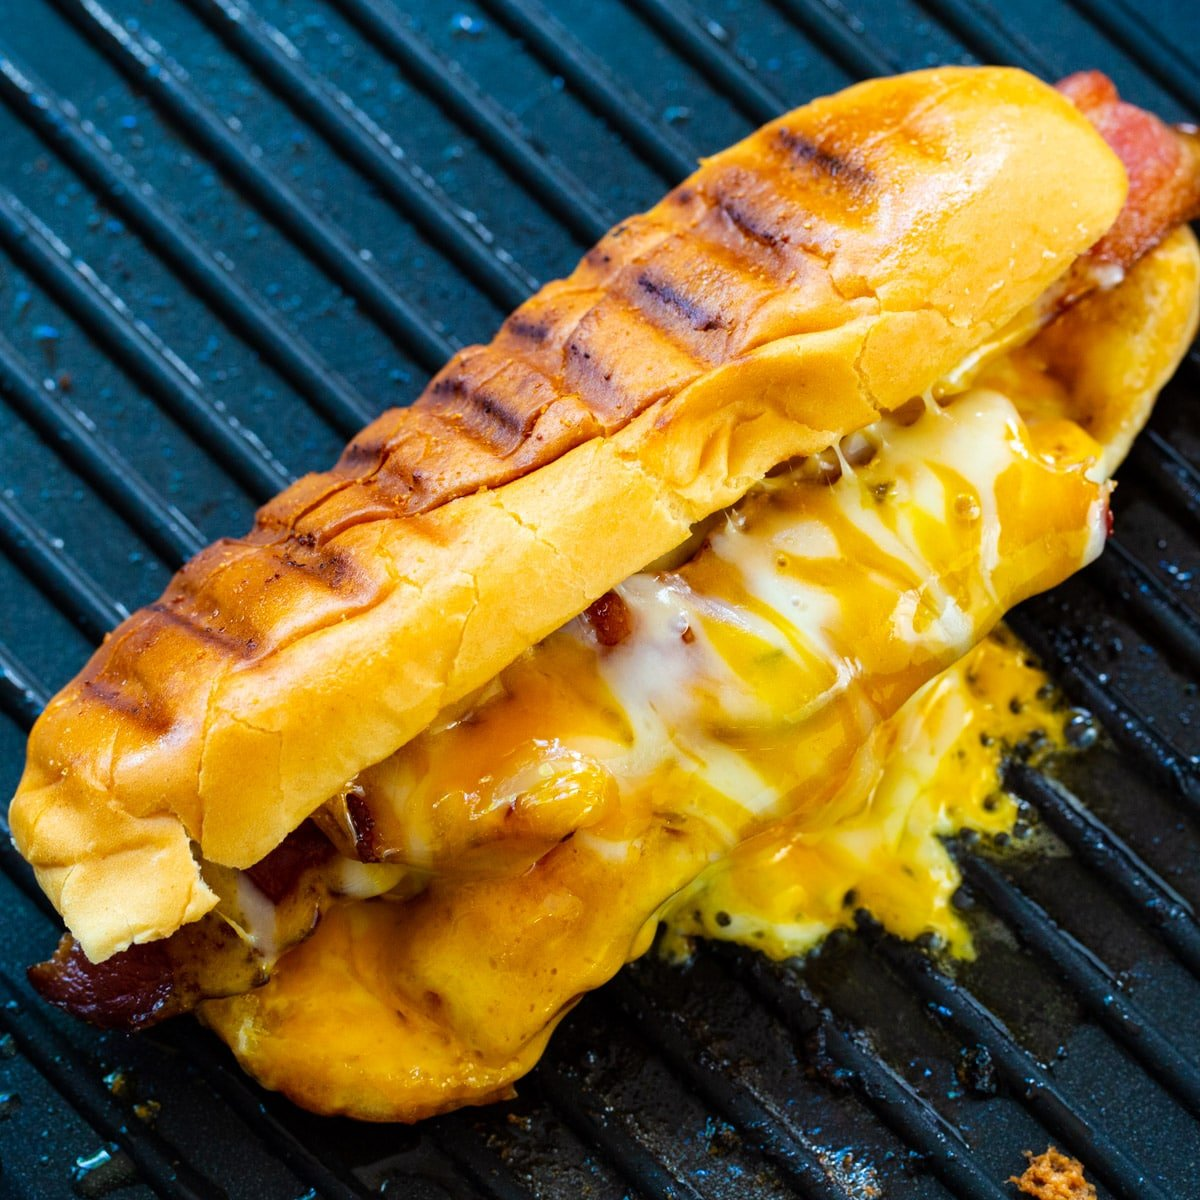 Grilled Cheese Hot Dogs on a grill pan.